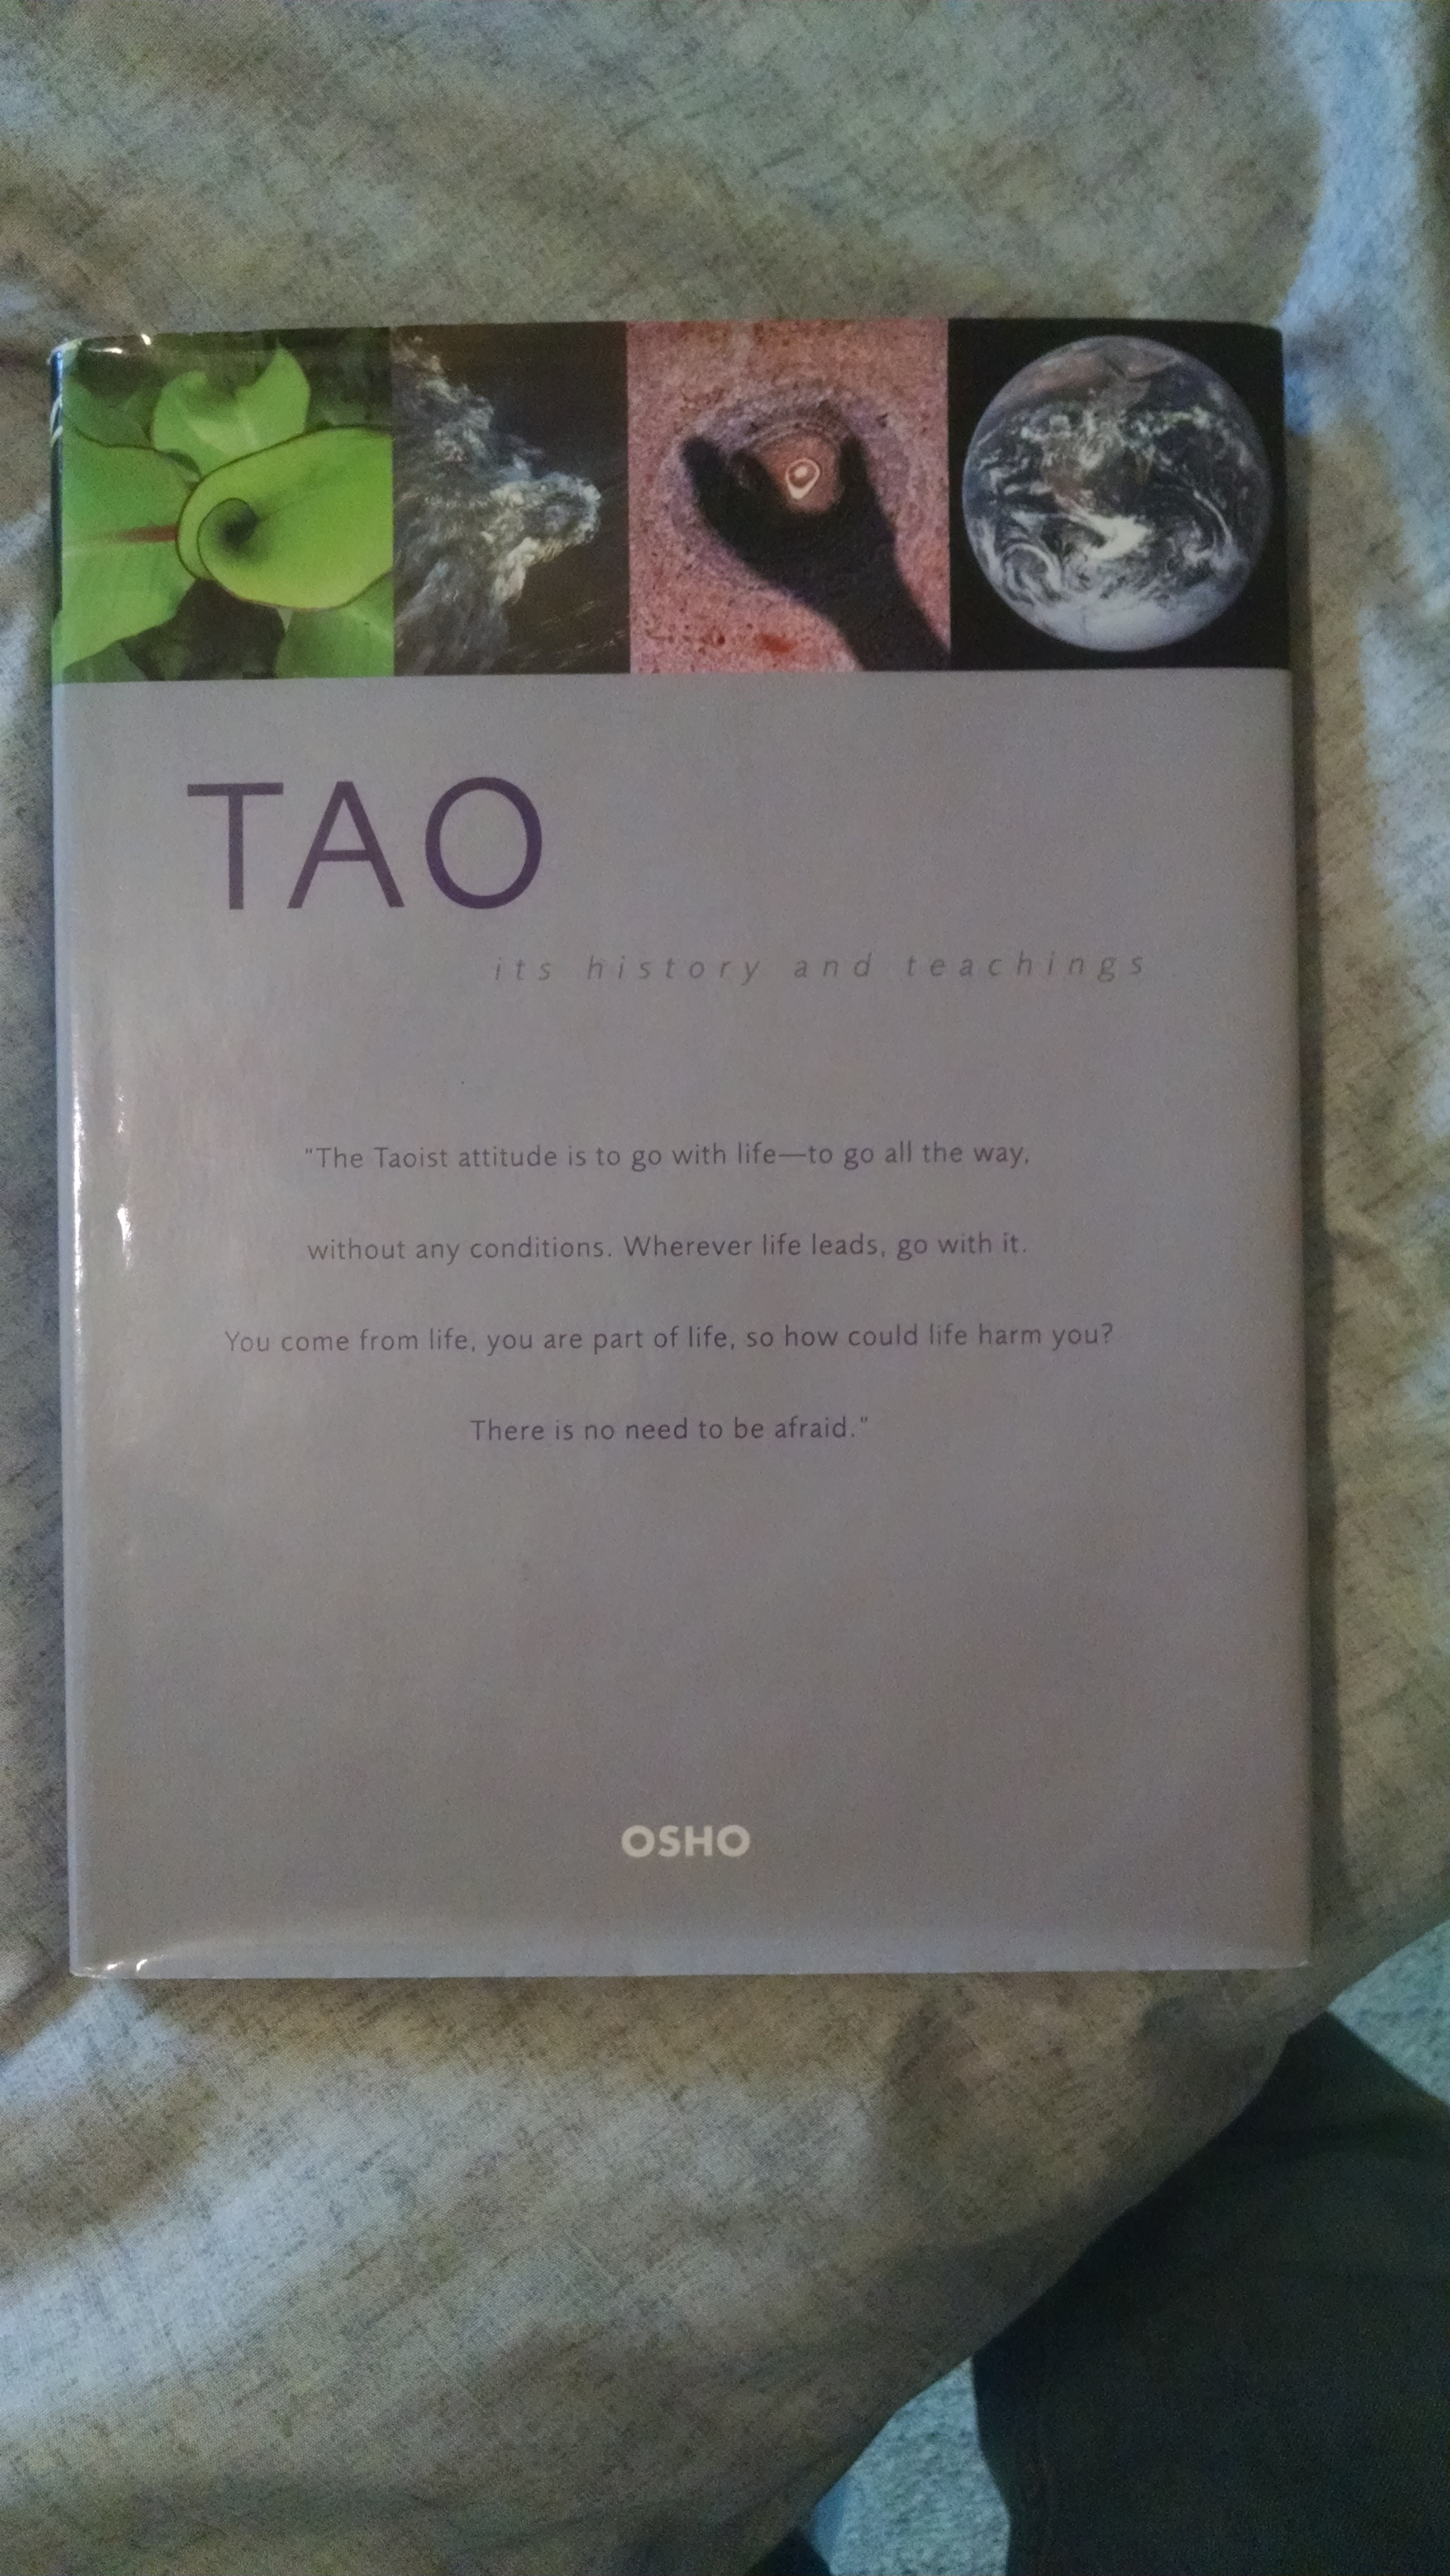 Image for TAO    ITS HISTORY AND TEACHING